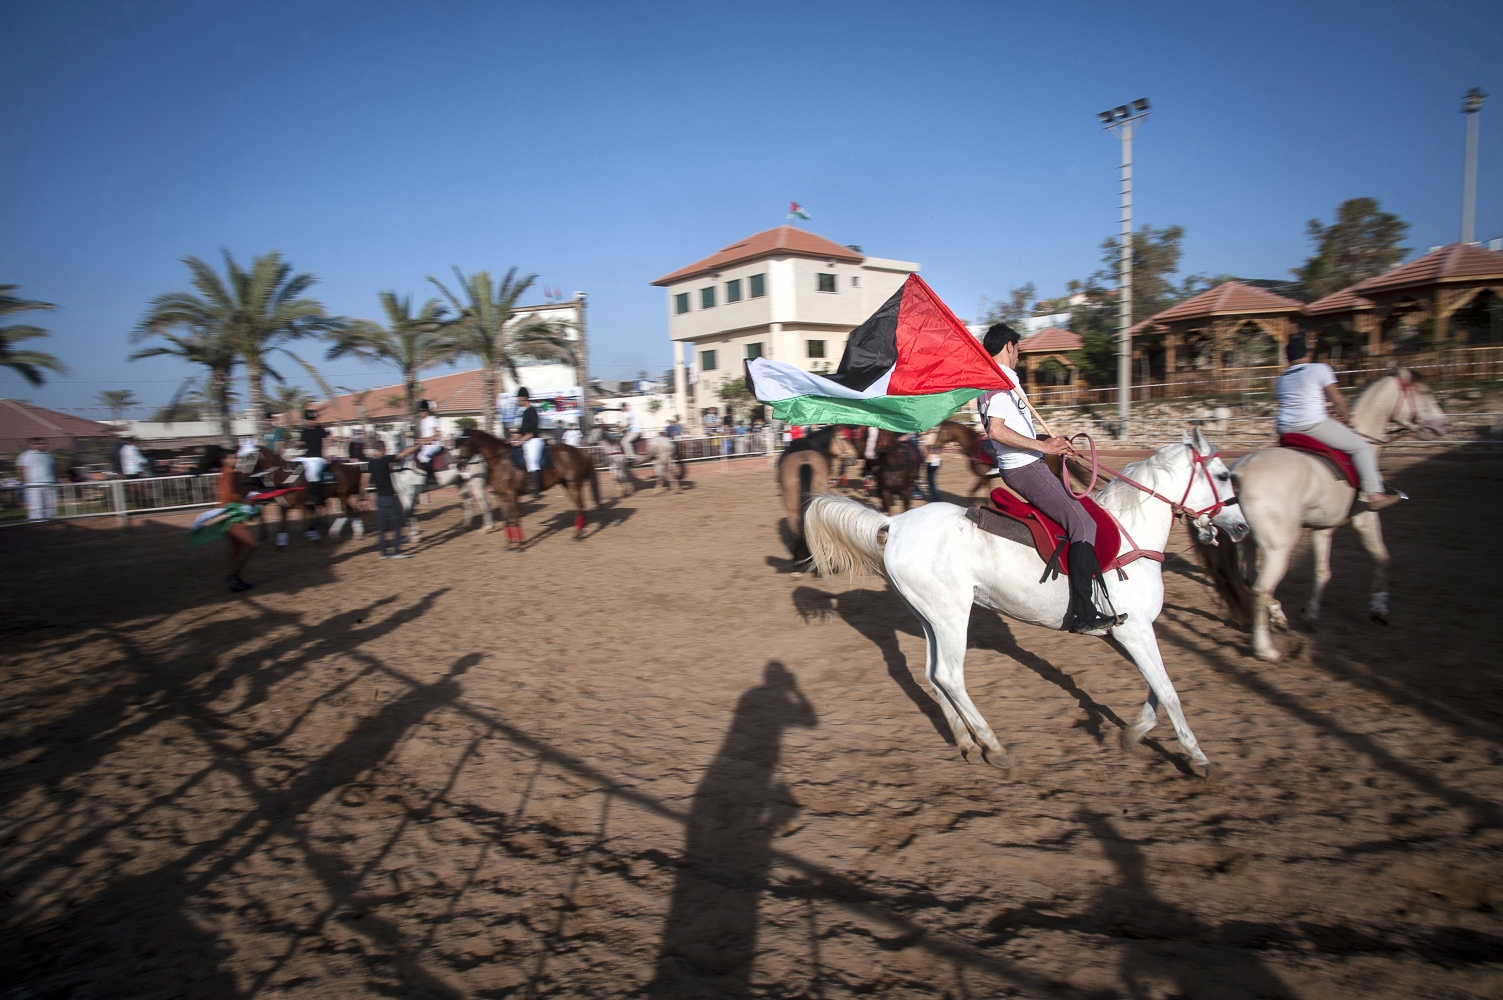 The President's Equestrian Club in the north of Gaza. It is the most developed of the 3 equestrian clubs in the Gaza Strip.